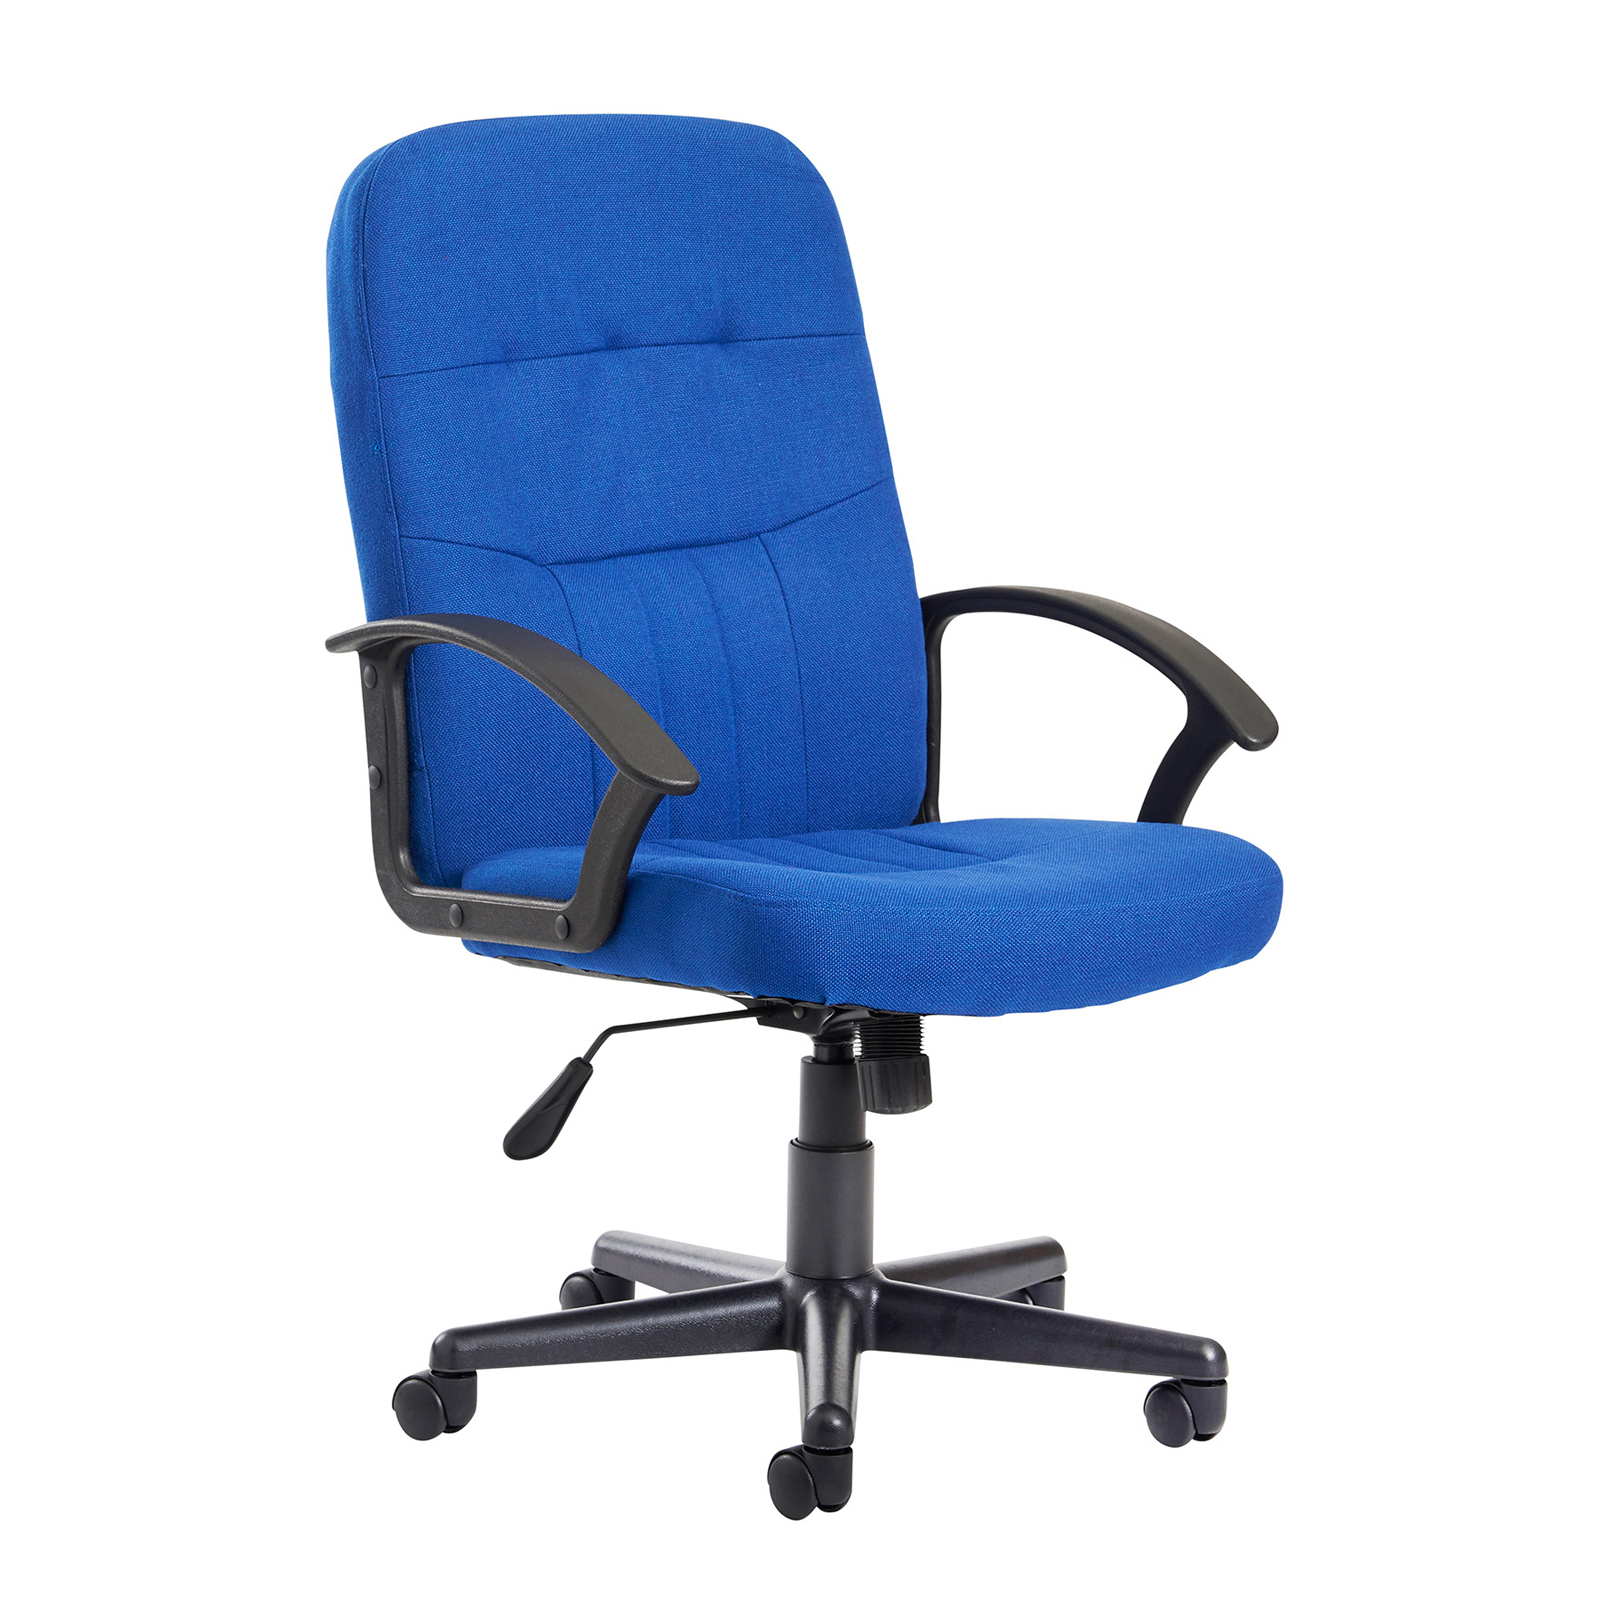 Desk Chairs Cavalier fabric managers chair - blue